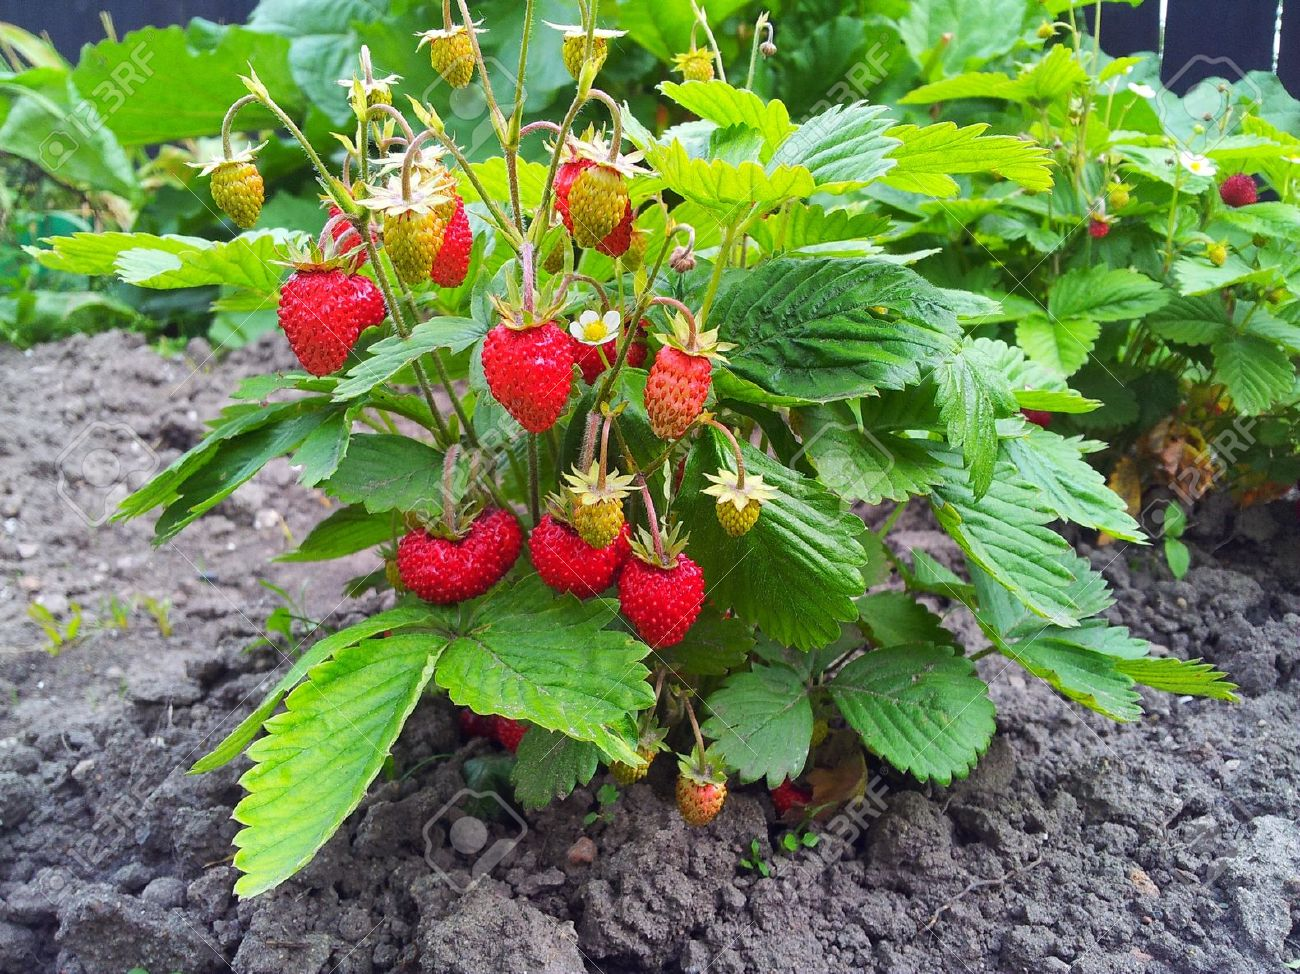 Strawberry Plant Images & Stock Pictures. Royalty Free Strawberry ...